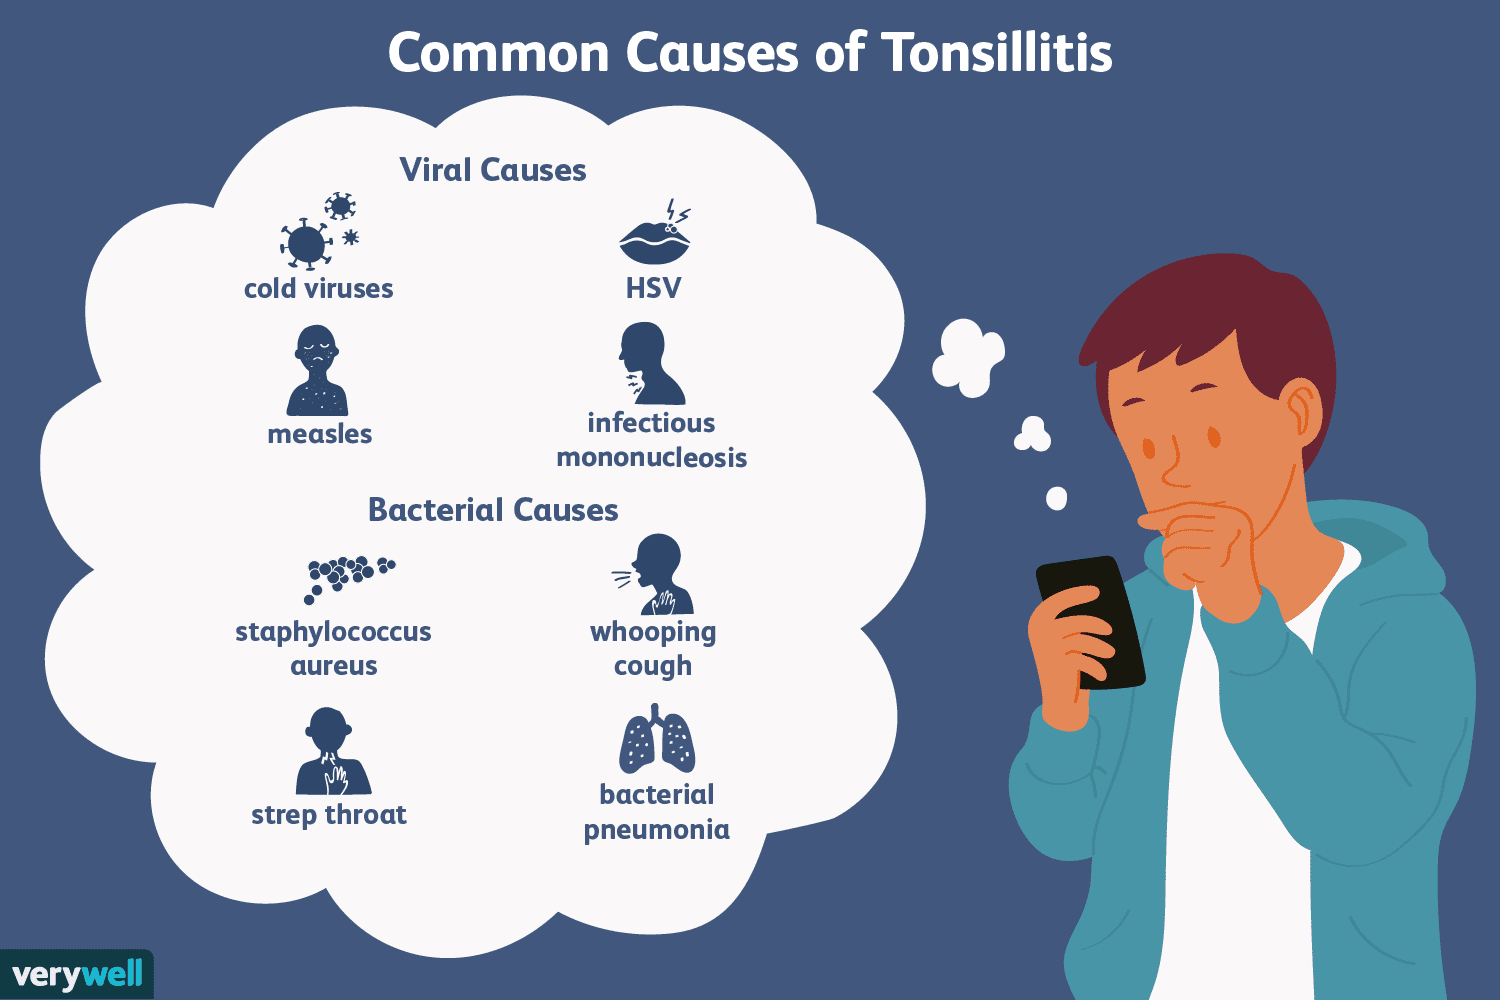 common causes of tonsillitis